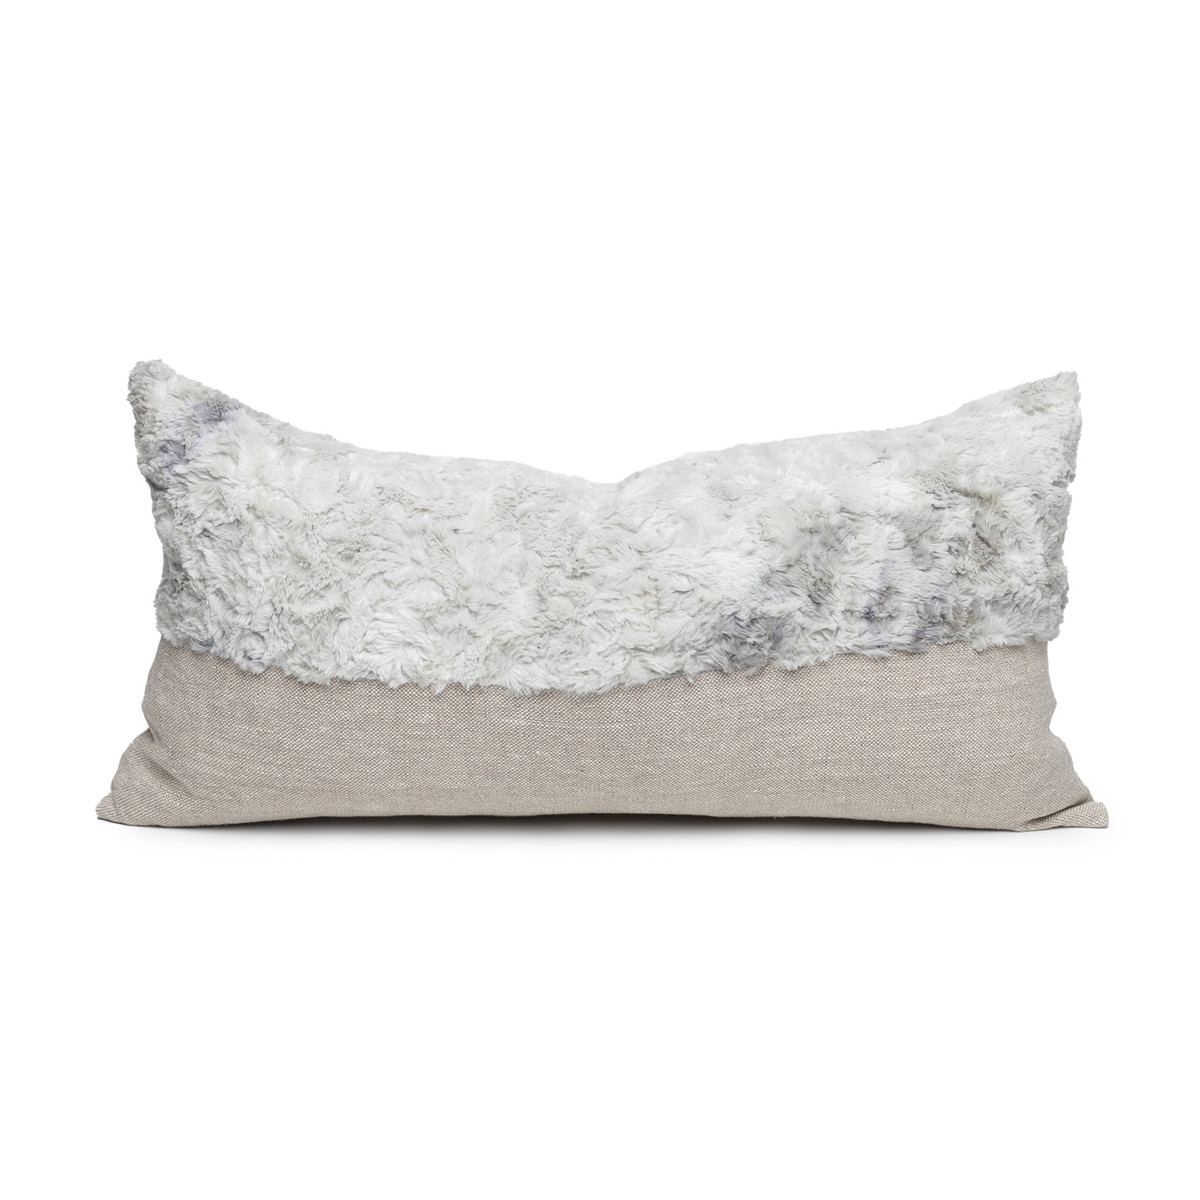 Fable Gray Vegan Faux Fur Lumbar Pillow  - Front